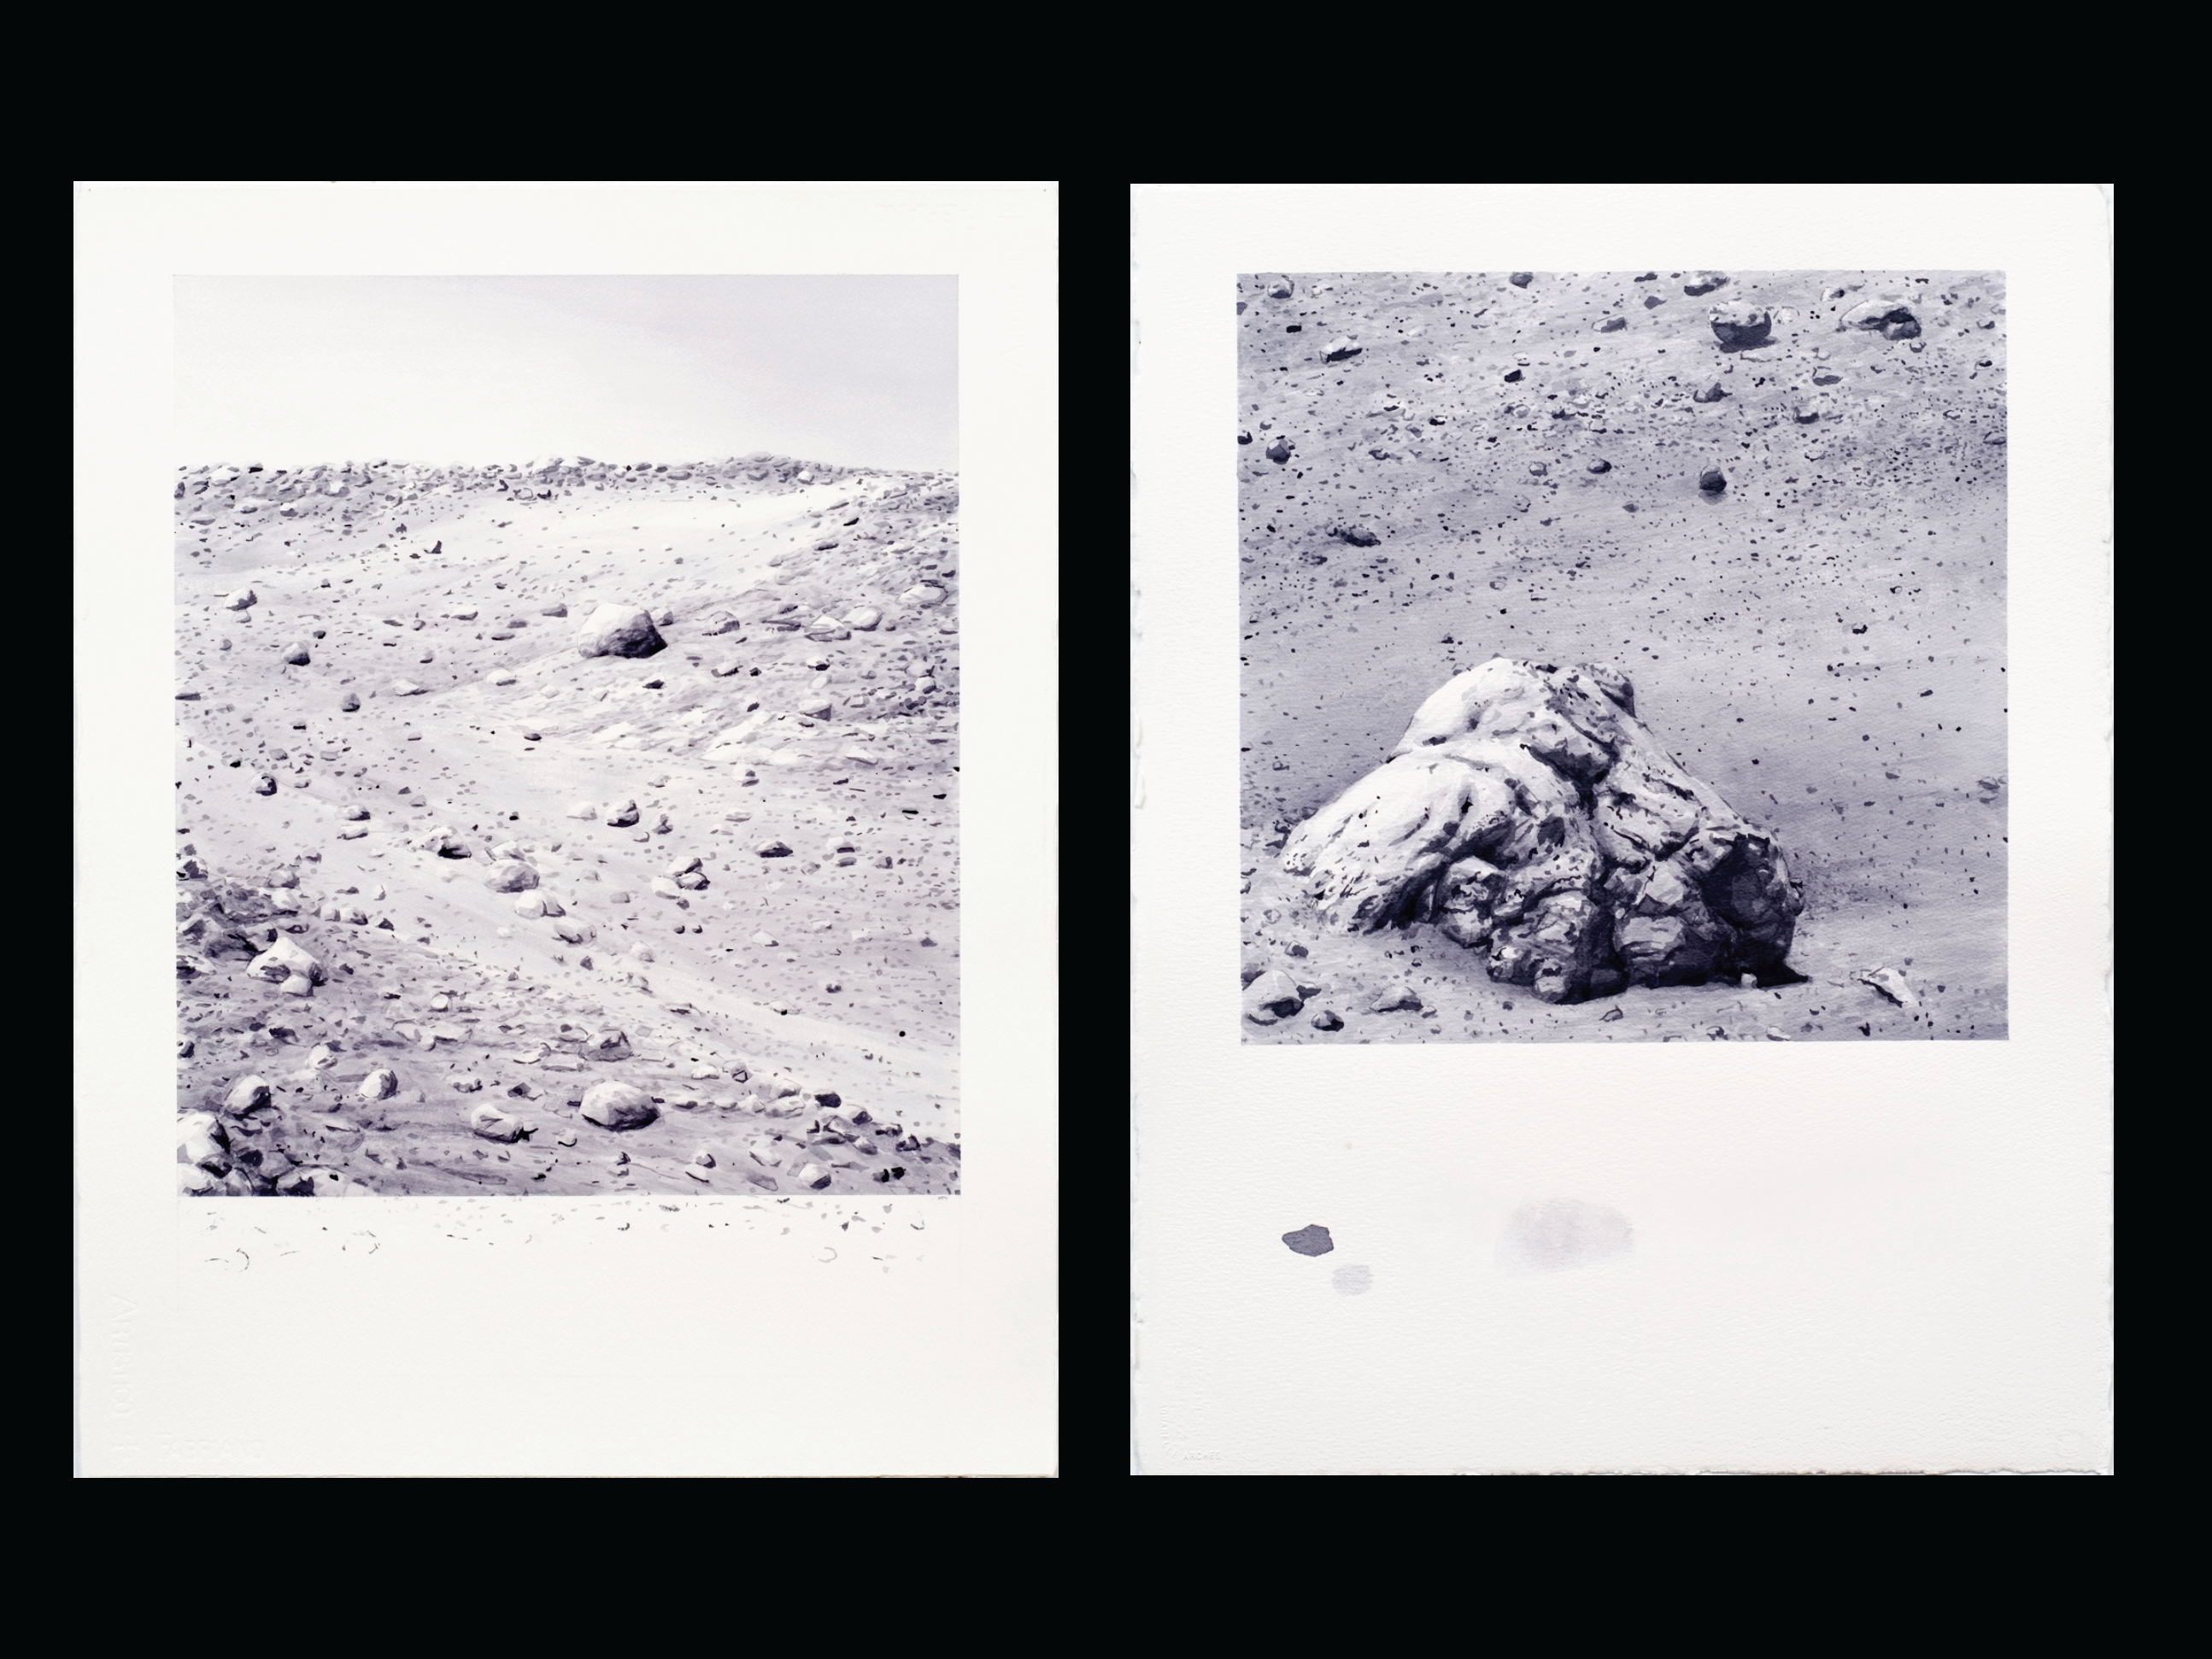 Mars Hillside & Mars Rock #1, 2005